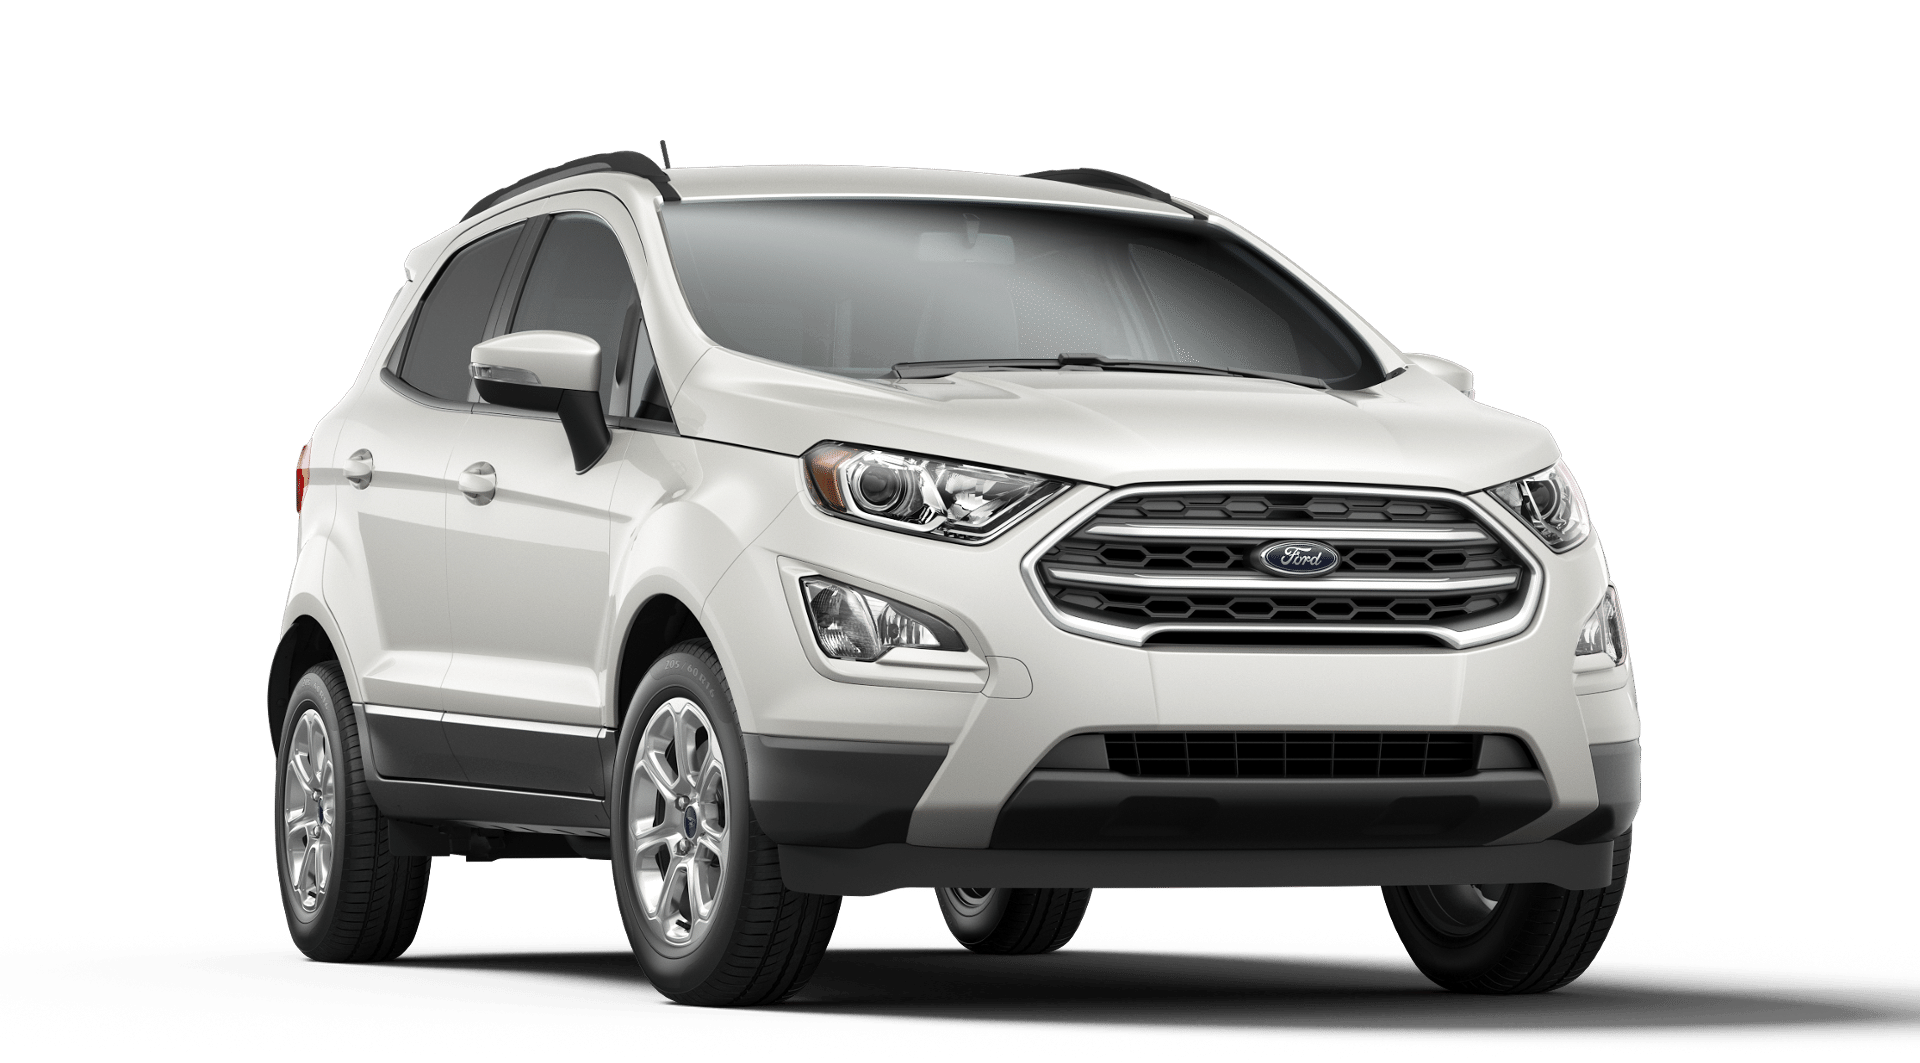 2019-Ford-EcoSport-White-Platinum-Exterior-Color_o